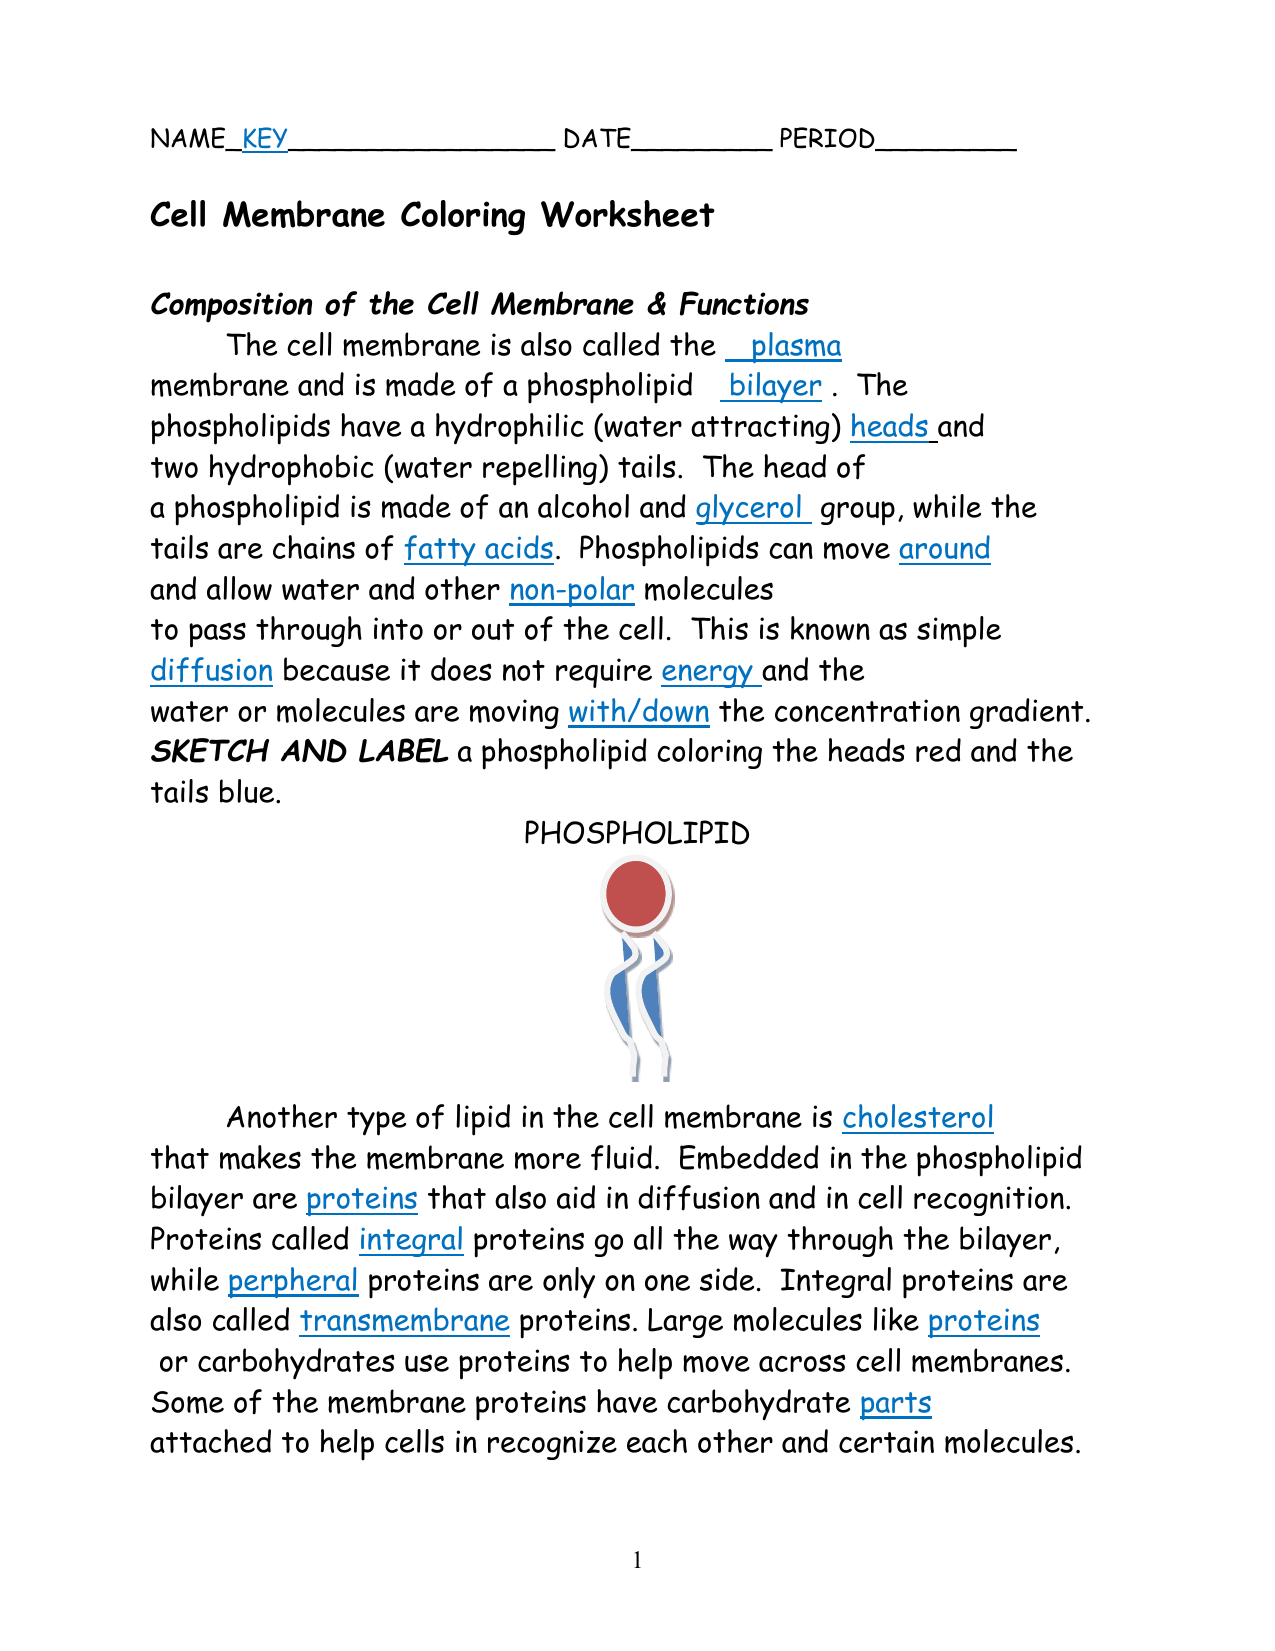 cellmembranecoloringworksheetKEY – Cell Membrane Coloring Worksheet